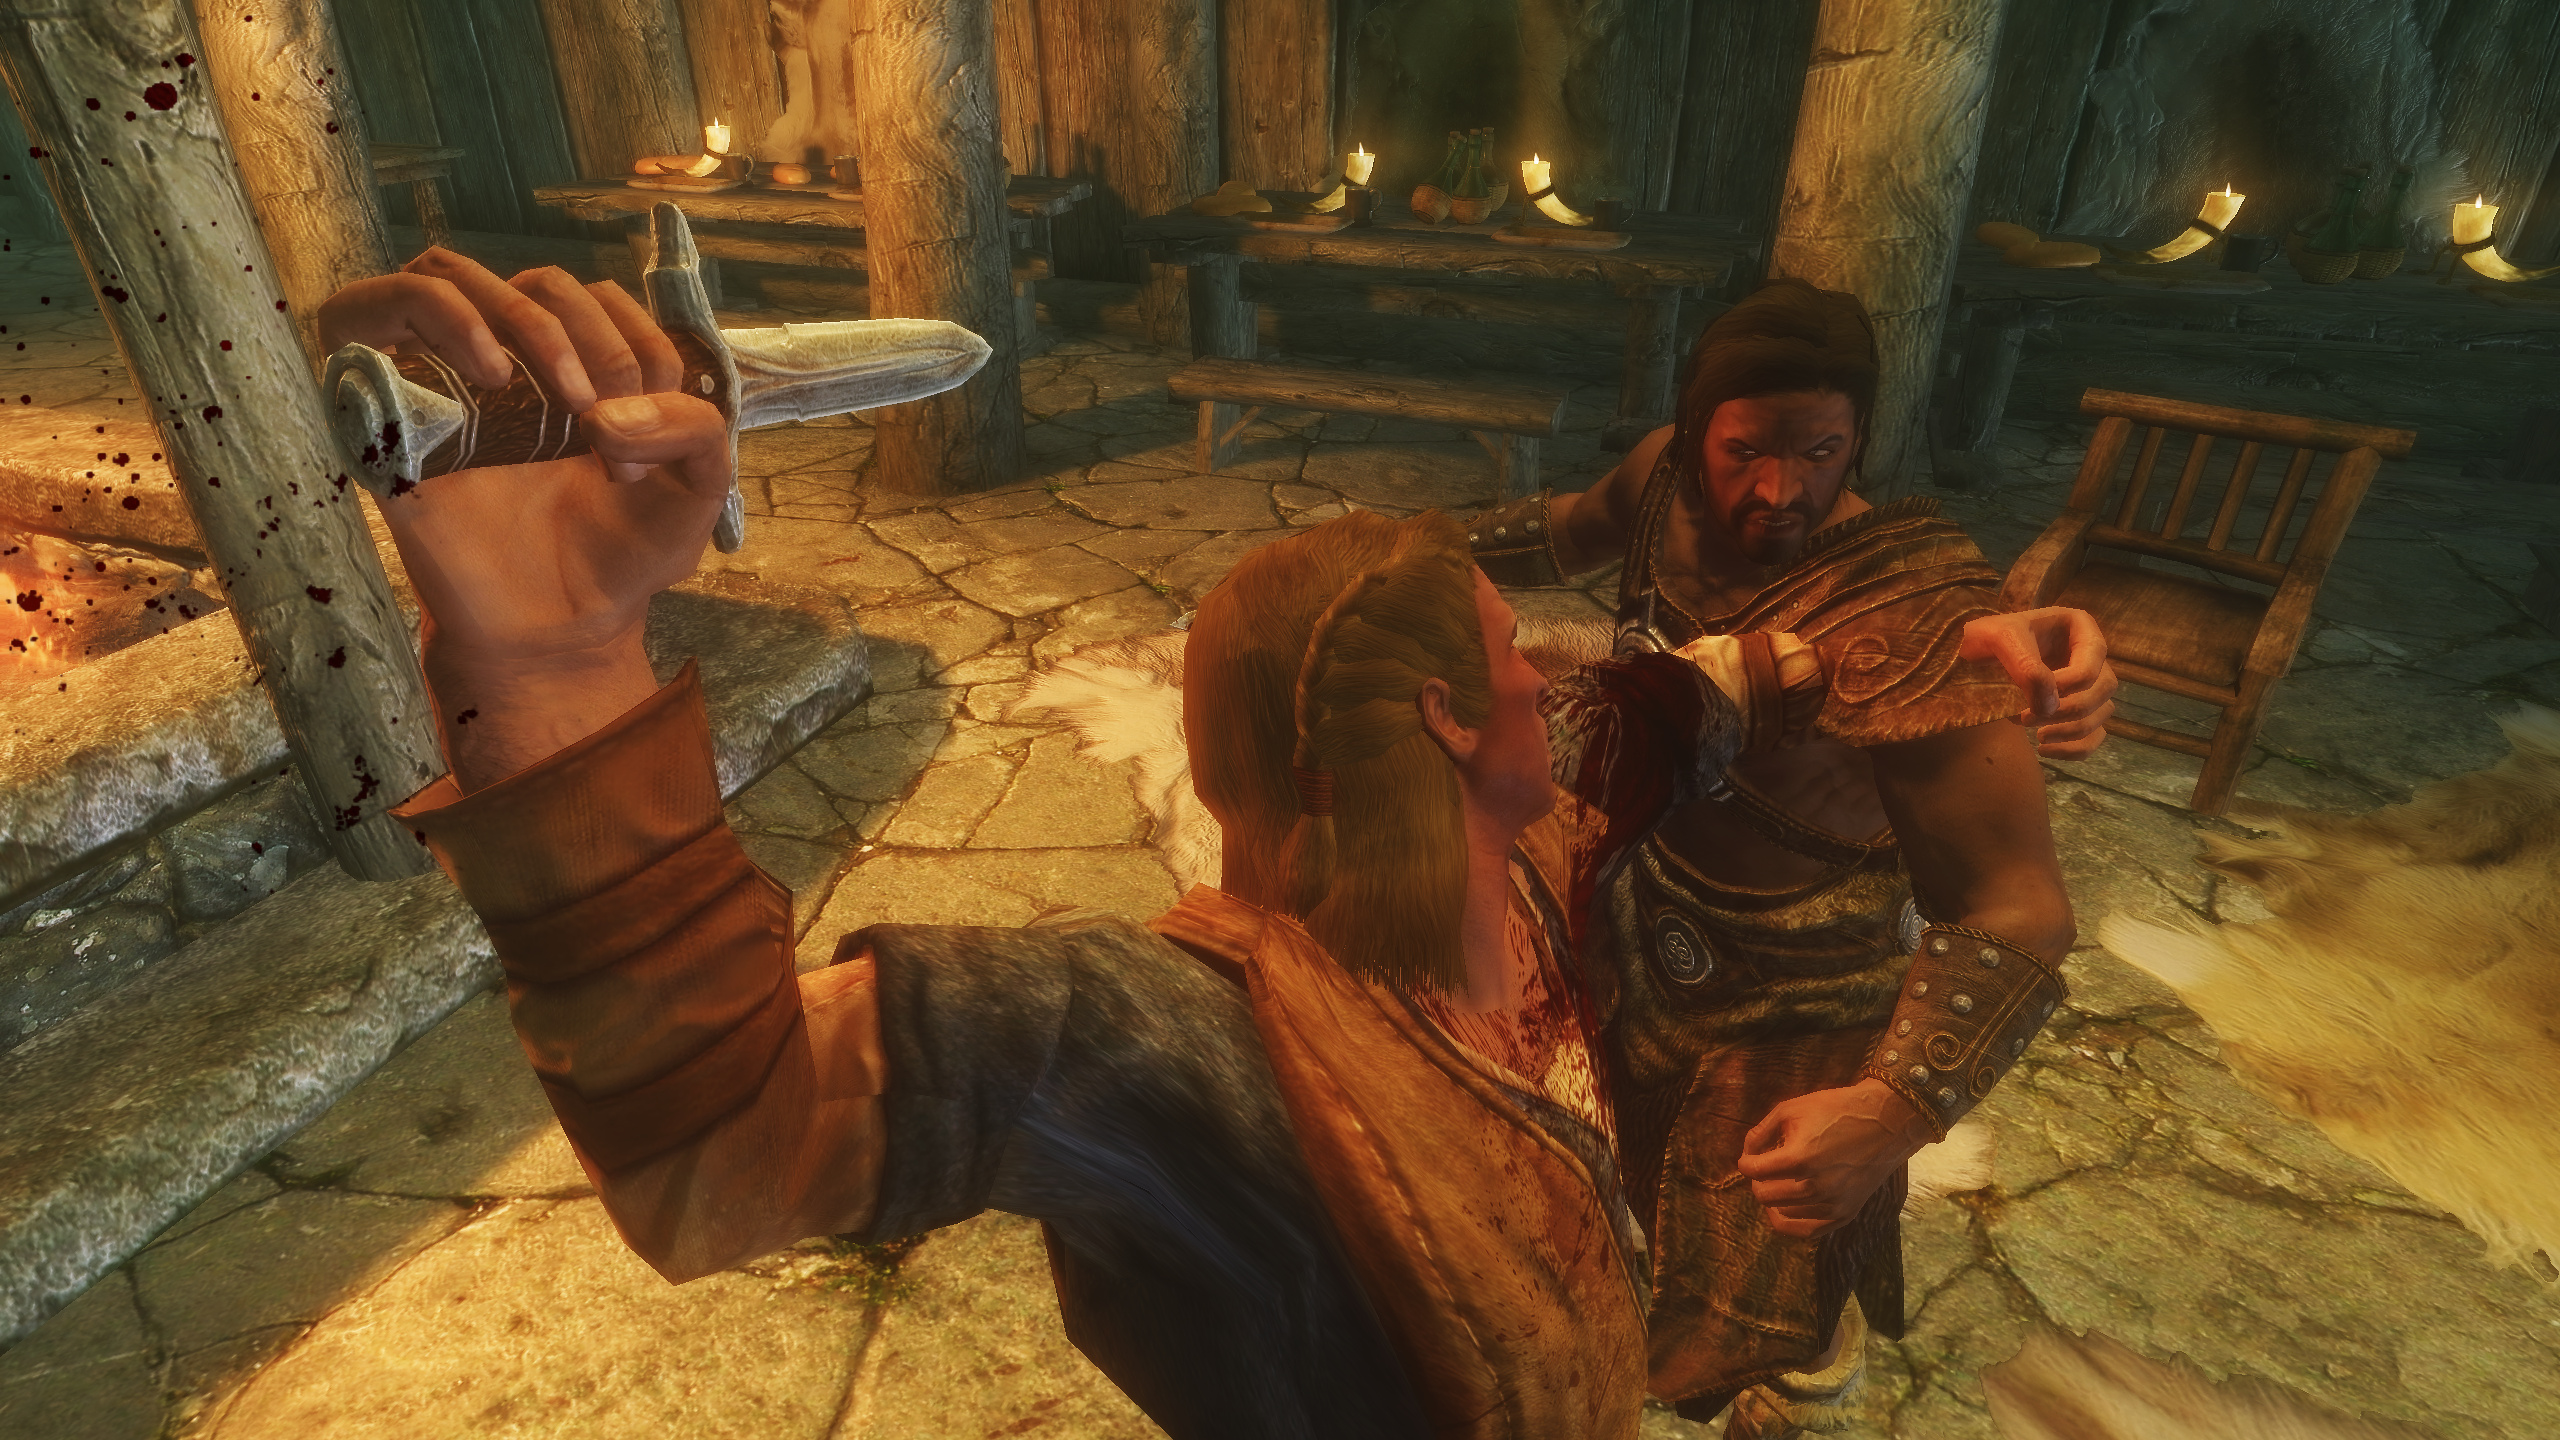 Beat up irritating Skyrim NPCs with honour thanks to a new duel mod